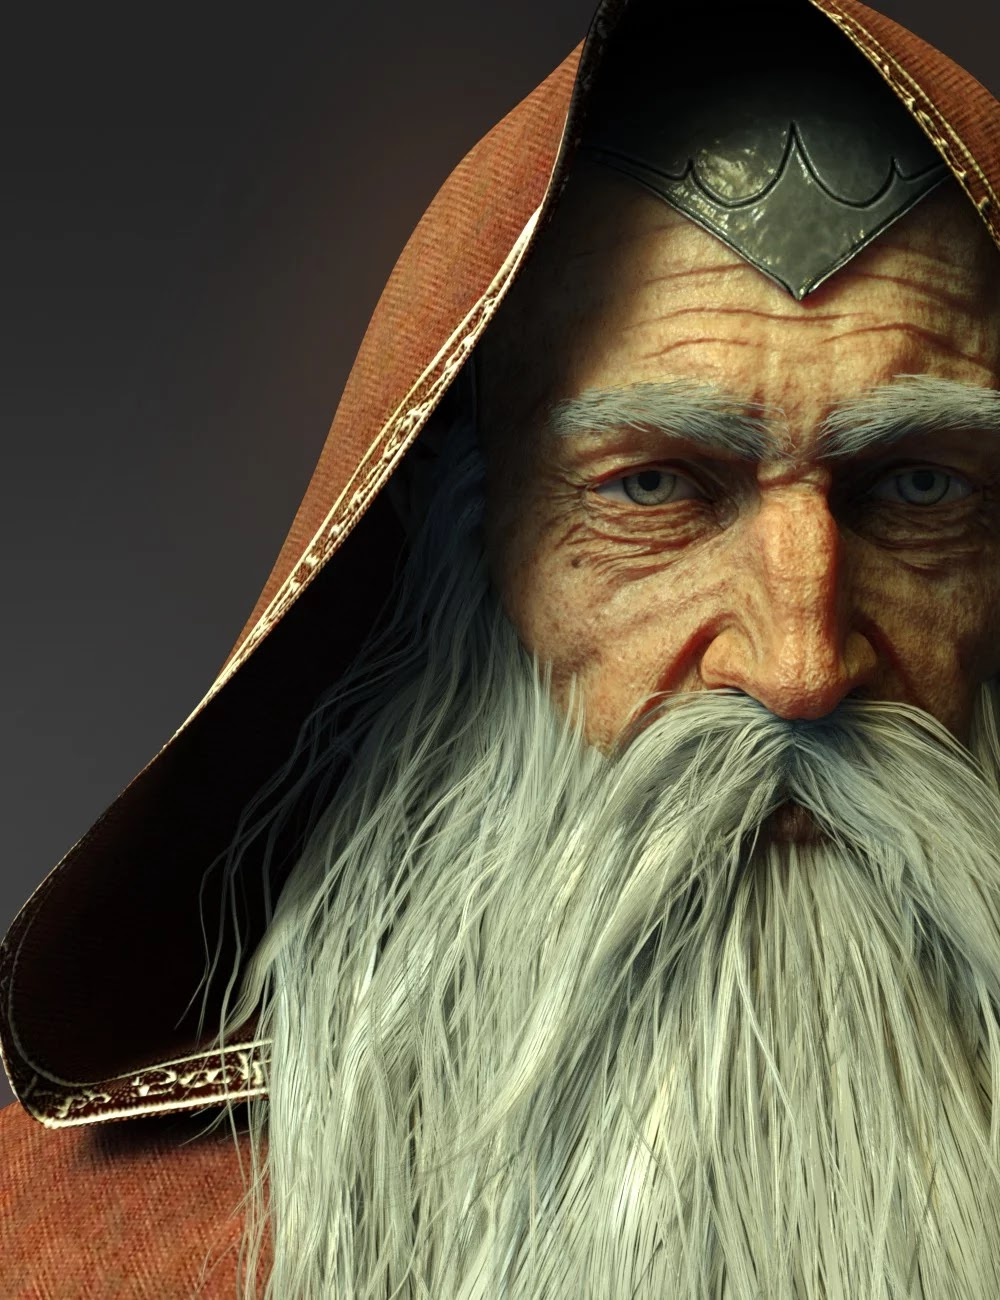 Wise Wizard HD Character for Genesis 8 Male_DAZ3D下载站